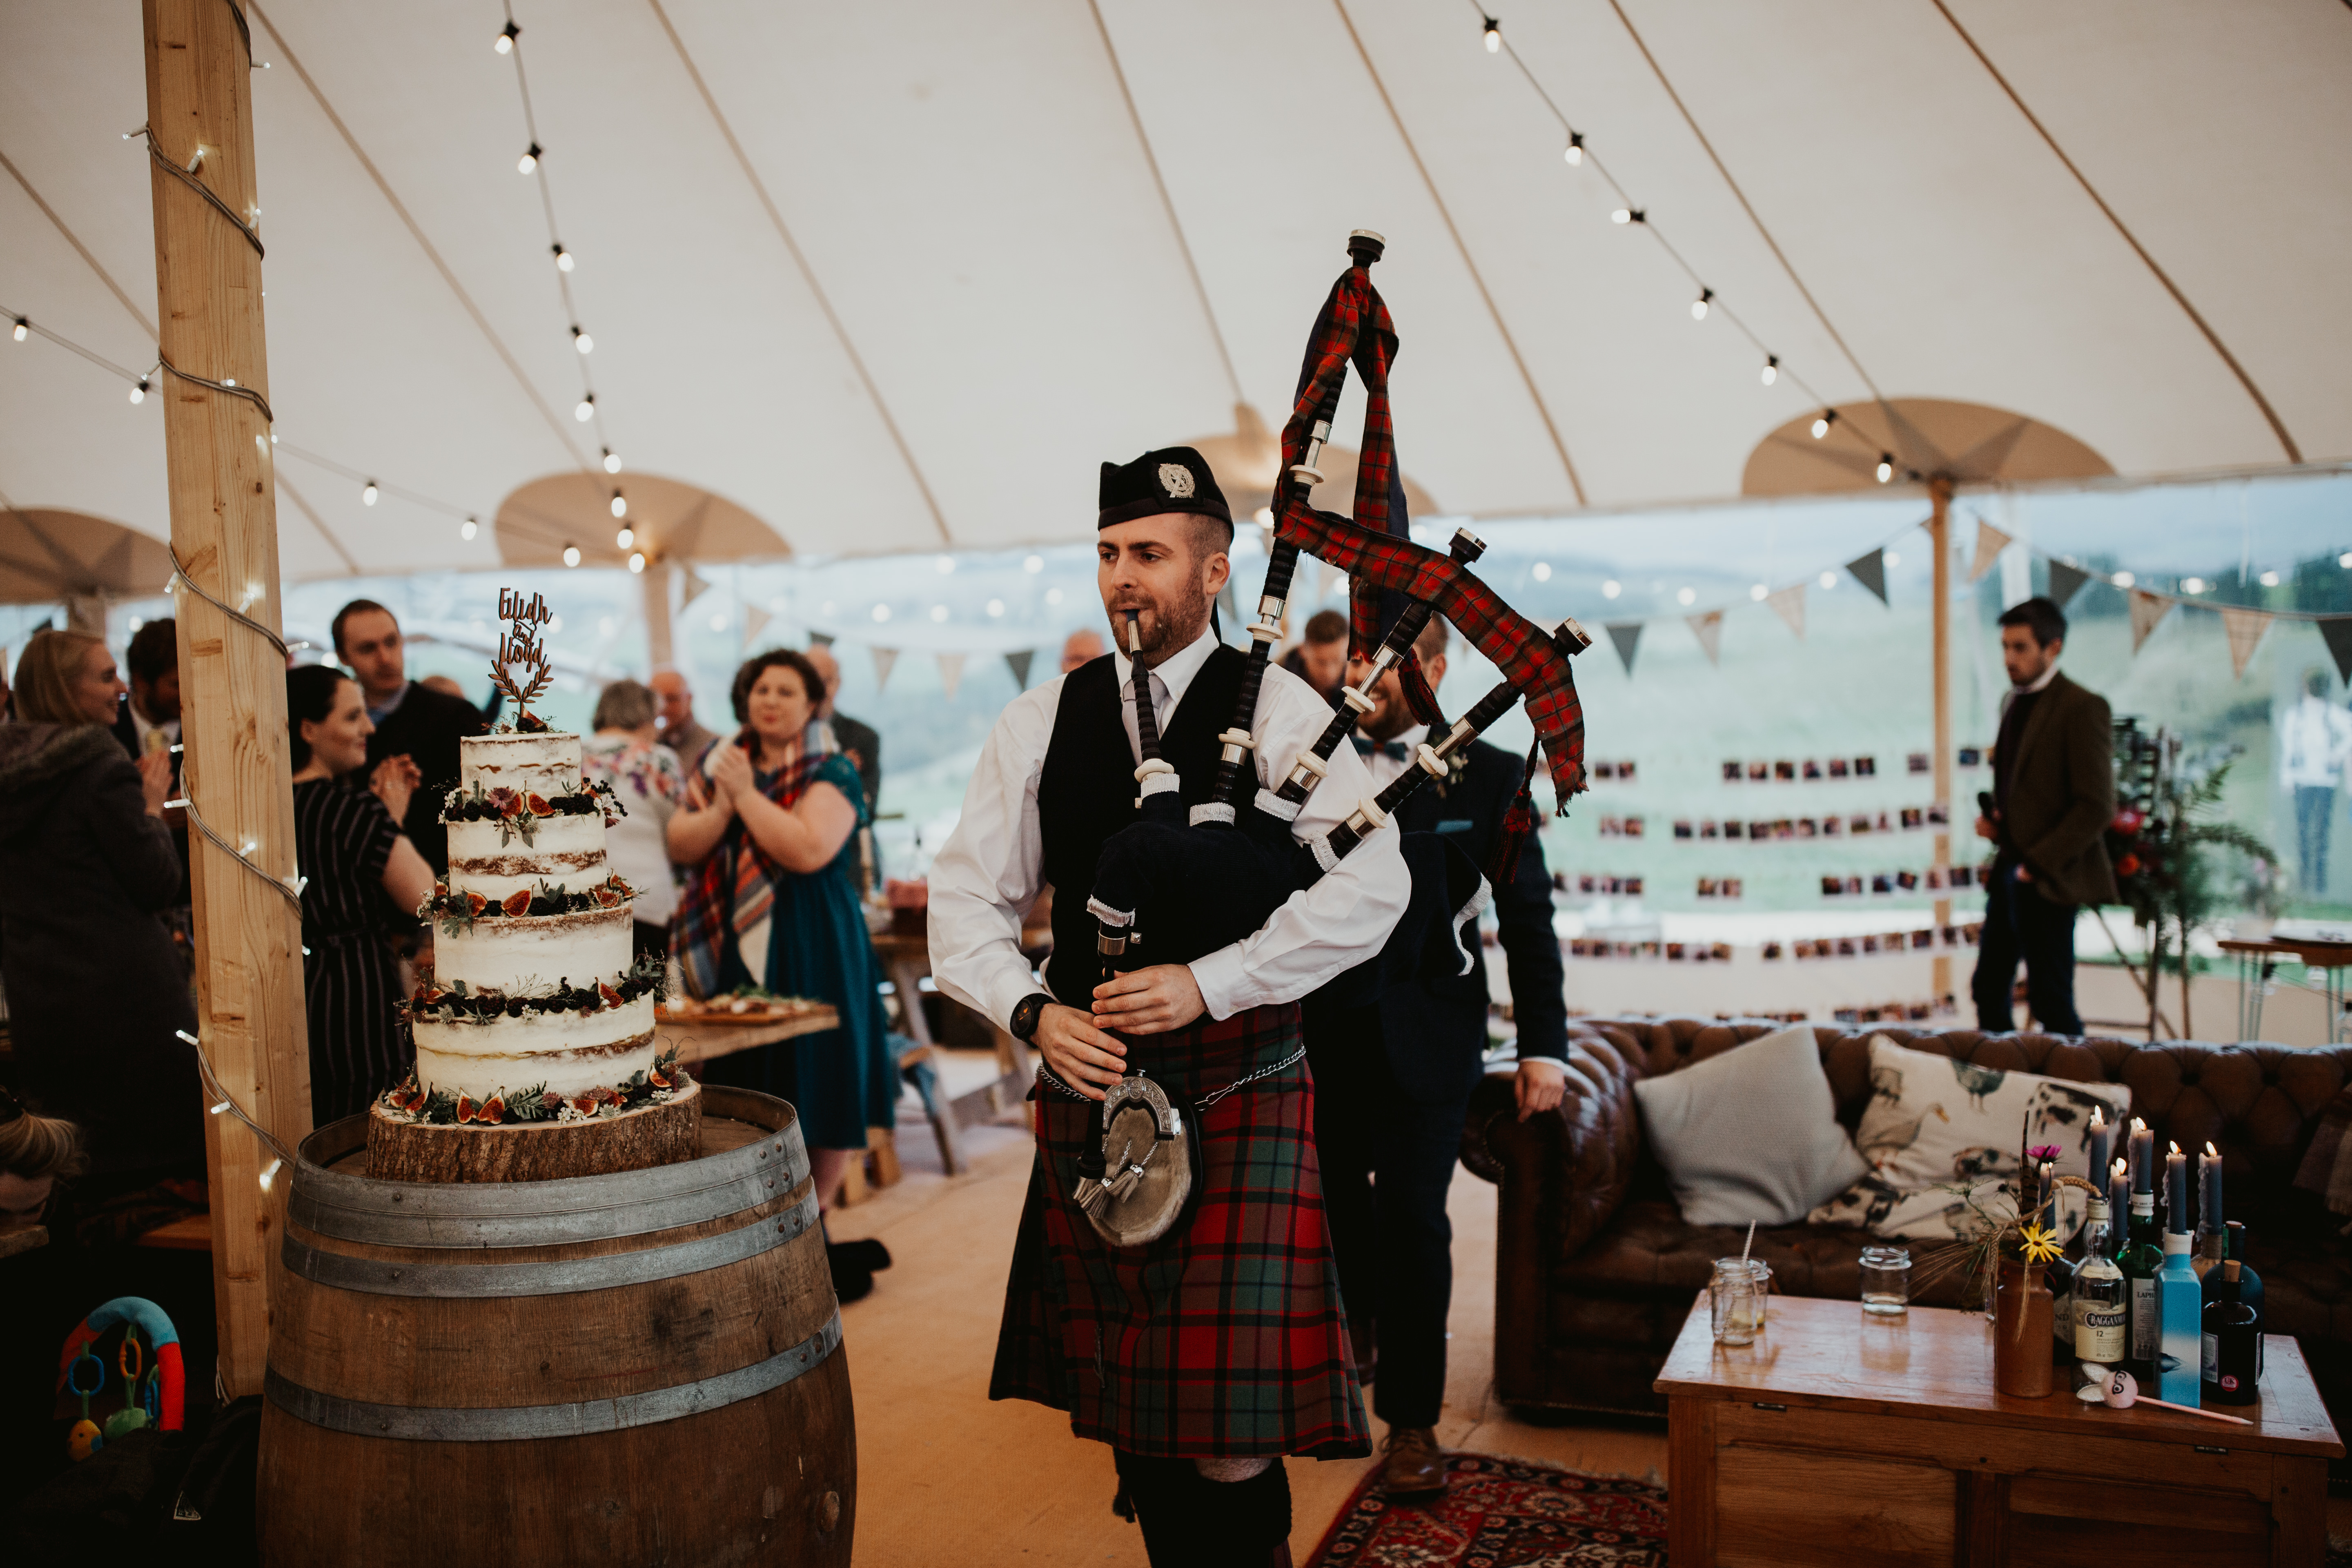 PapaKåta couple Eilidh & Lloyd's Sperry Wedding in Glenfarg, Perthshire captured by Colin Ross Photography- Bagpipe entrance